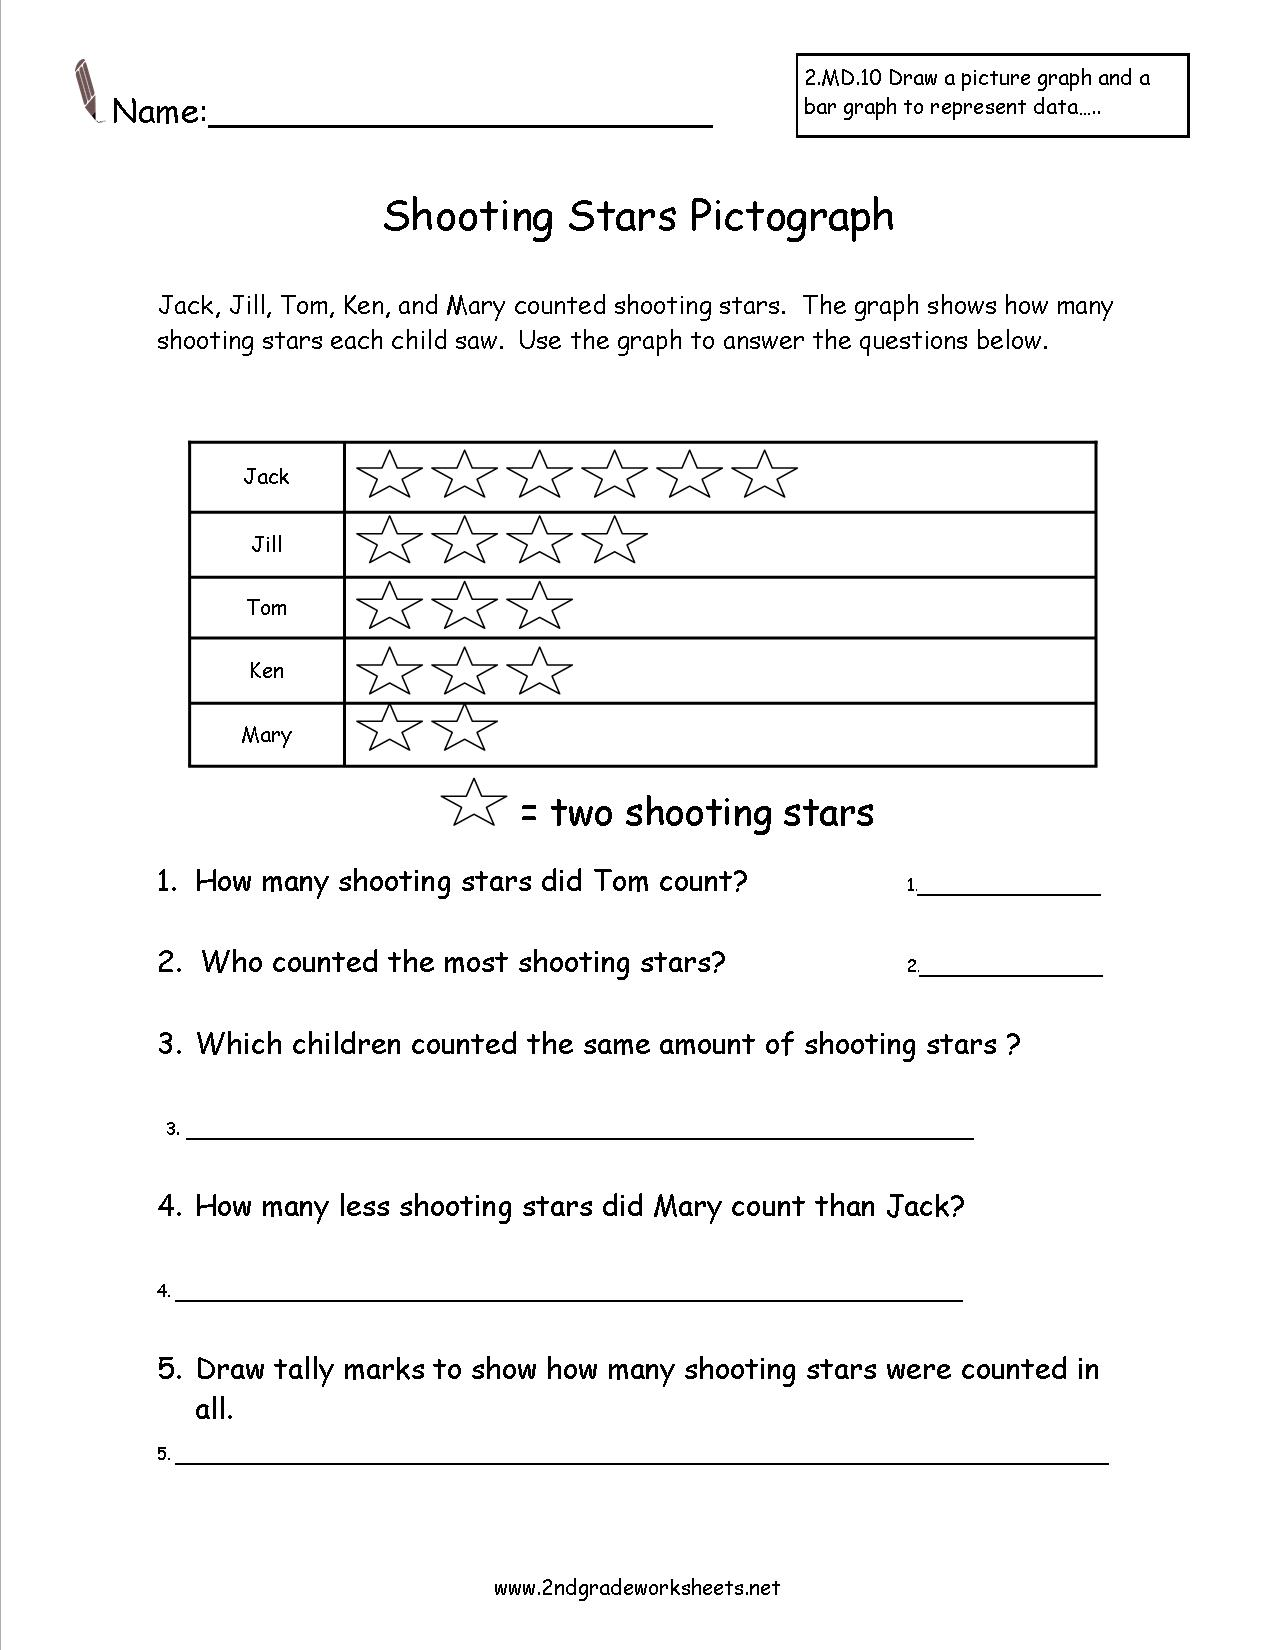 Free Printable Pictograph Worksheets For Kindergarten 1359136